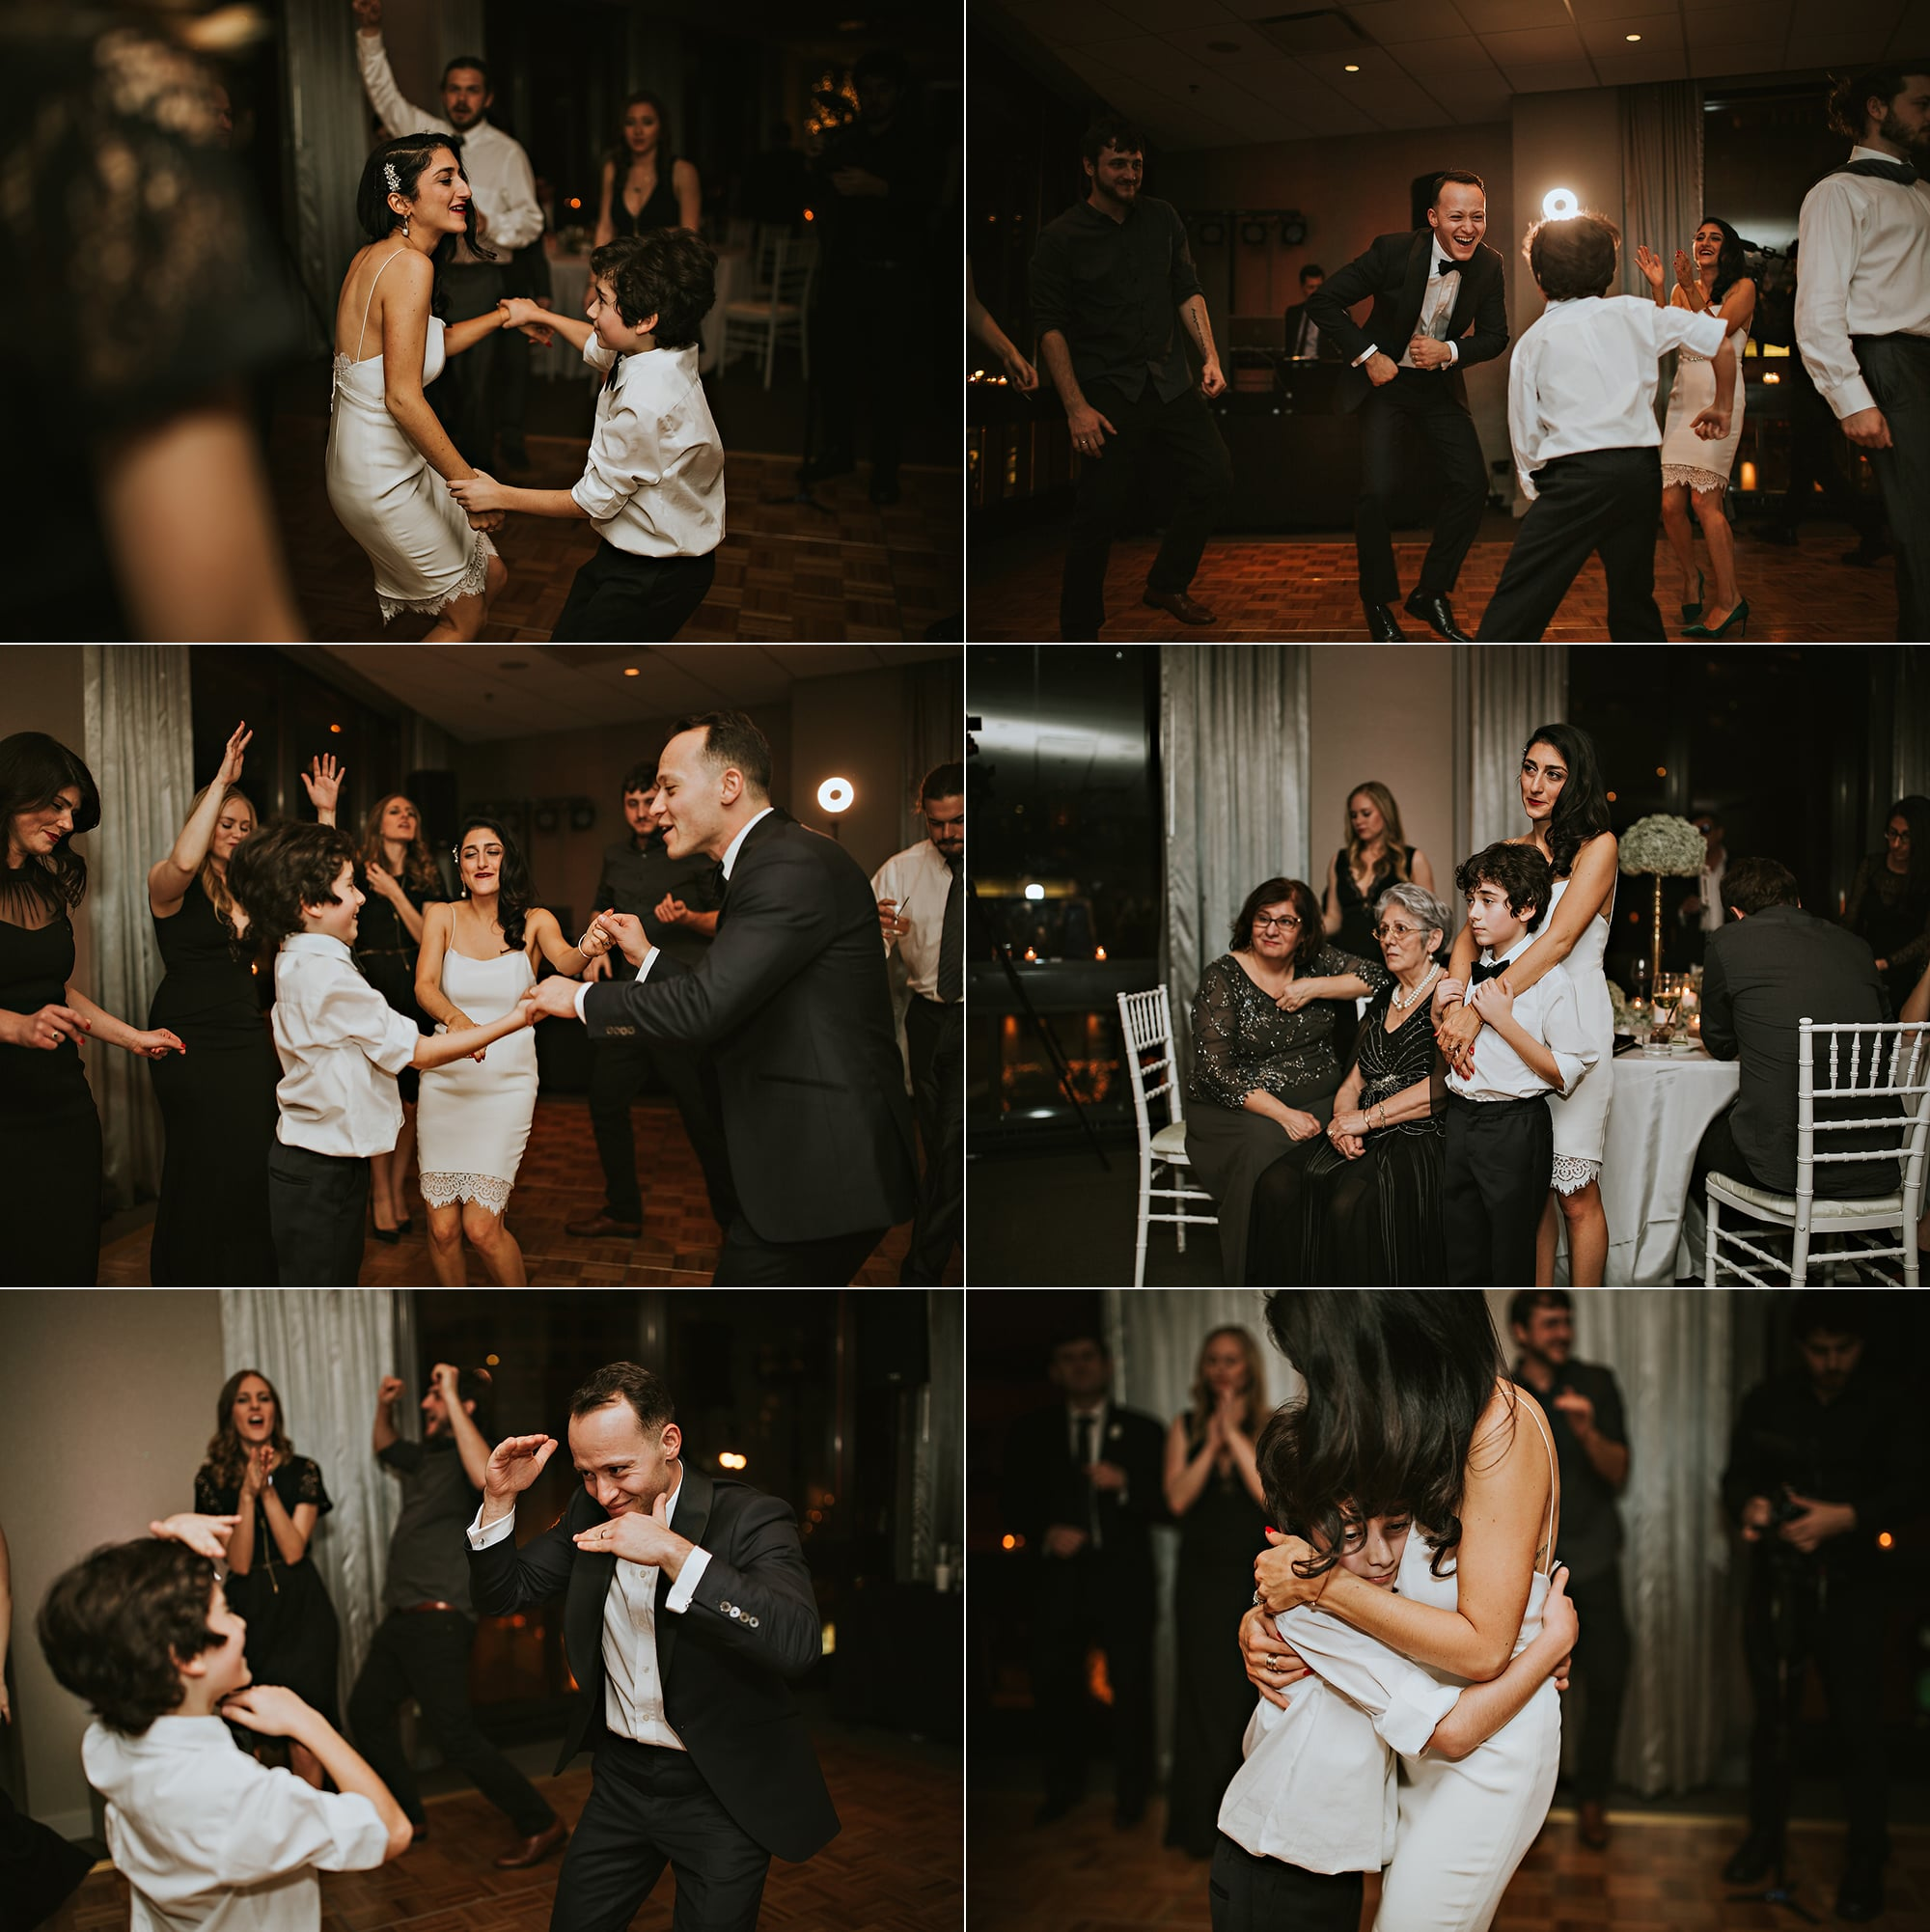 rachel gulotta photography wedding reception 1.jpg